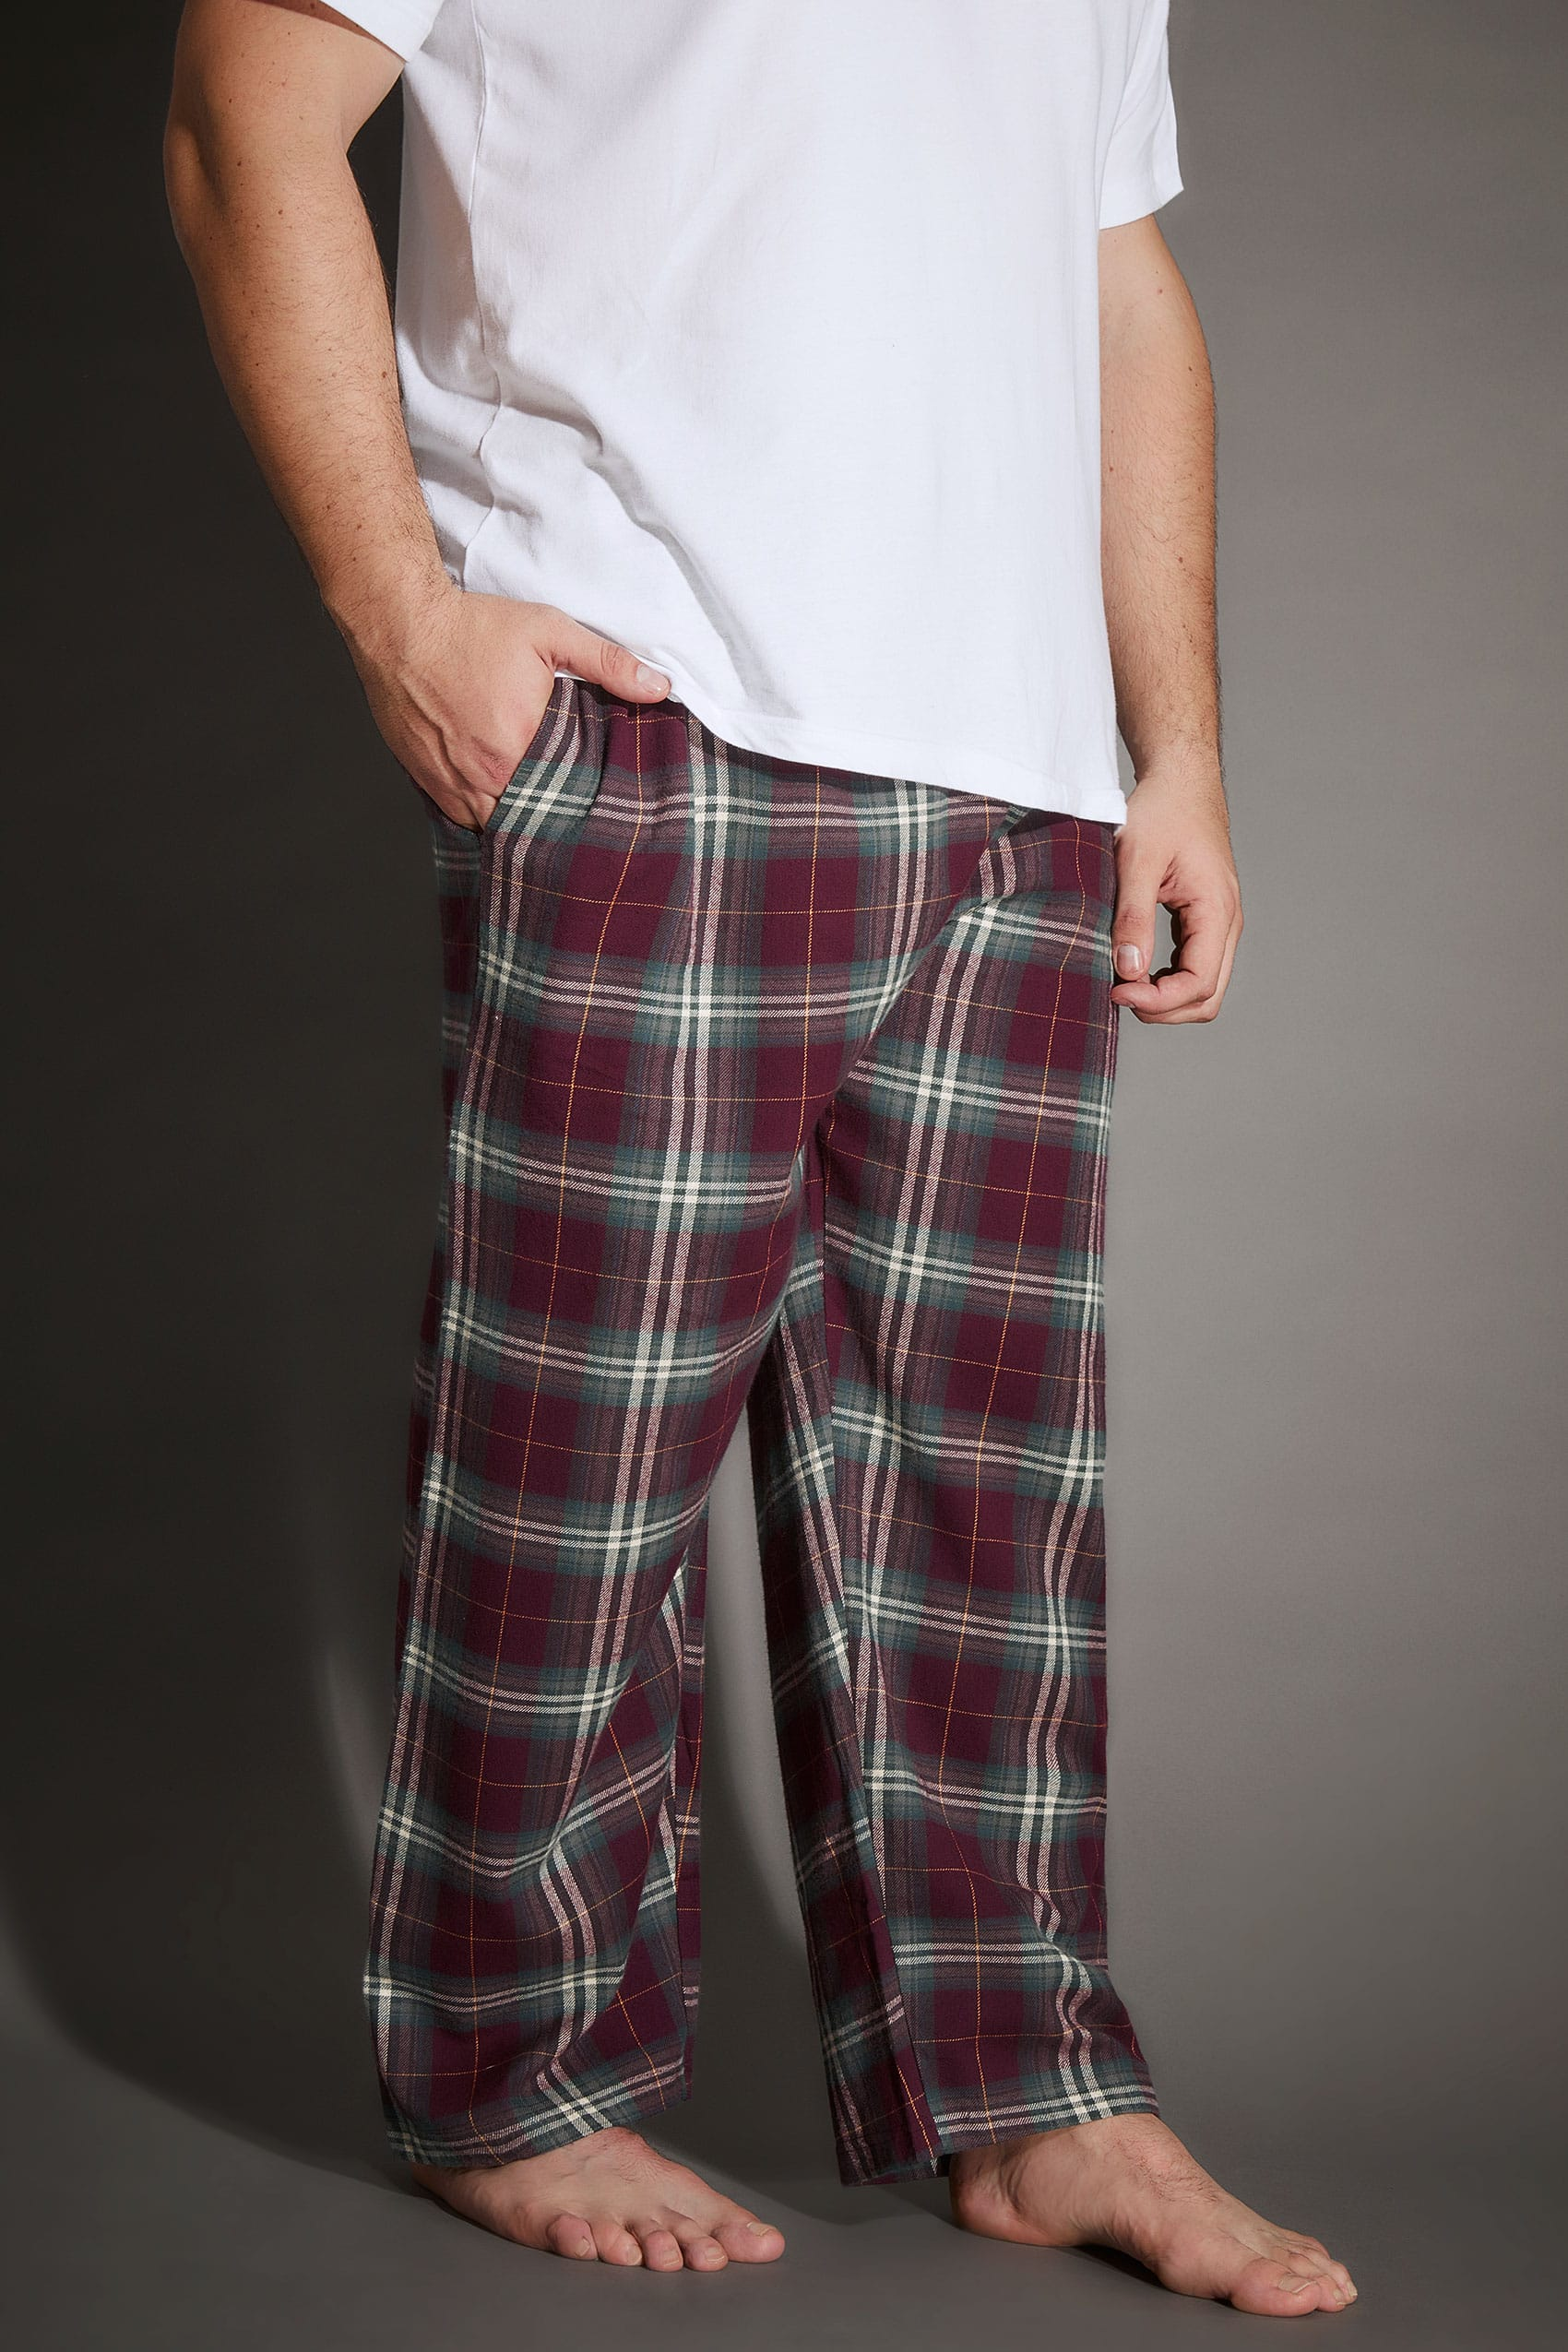 1c14bf21ba Nightwear BadRhino Burgundy   Green Check Pyjama Bottoms 200465 · Buy ·  Available in Big   Tall